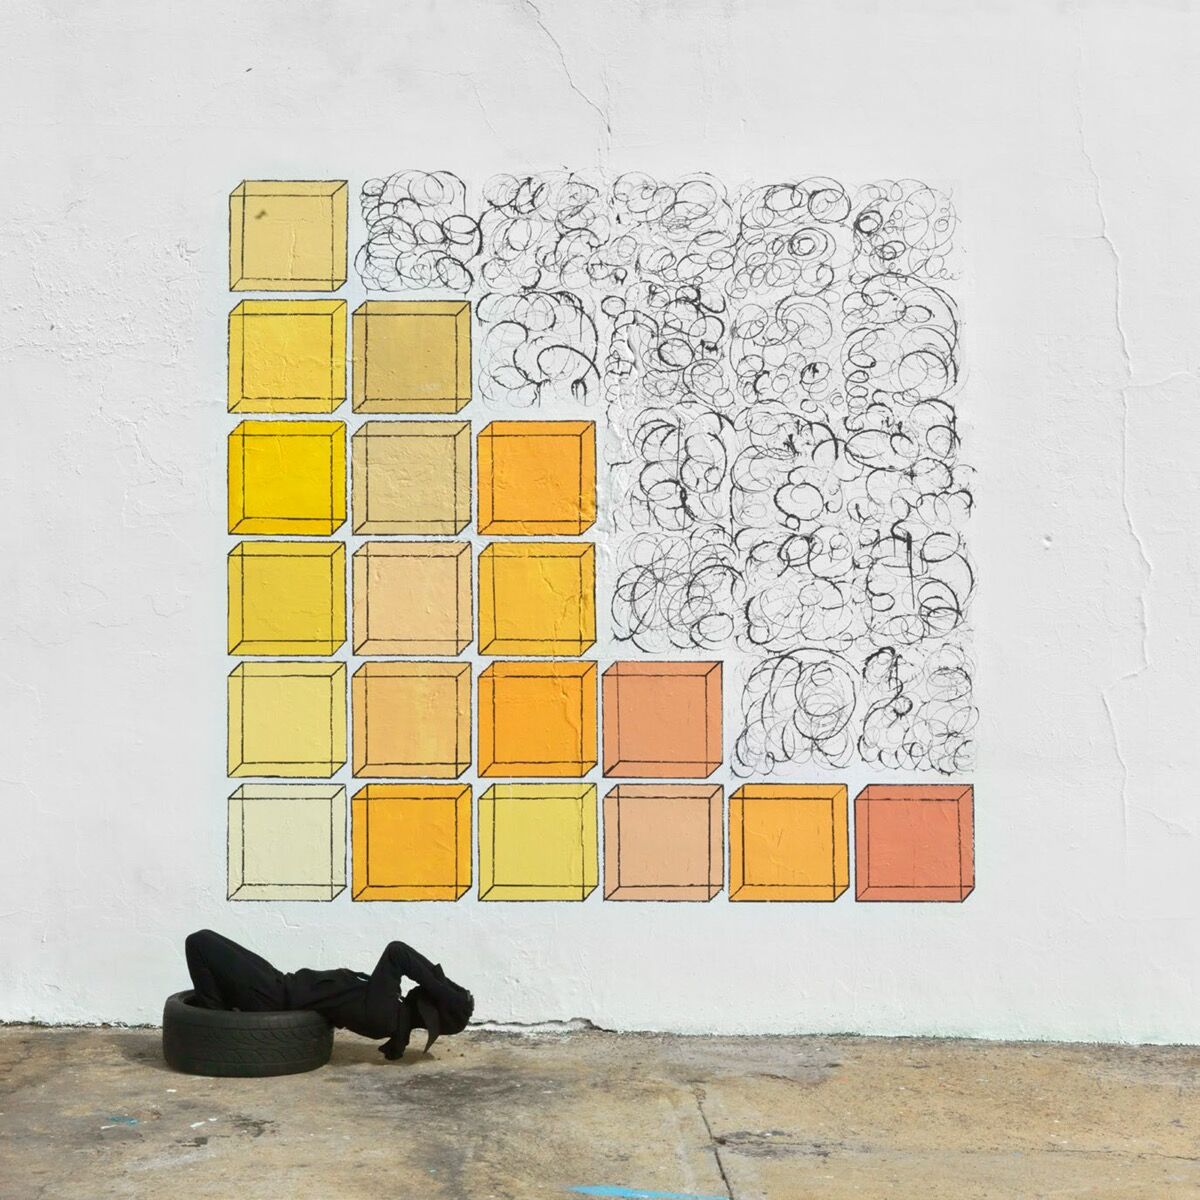 Robin Rhode, Under the Sun, 2017 (detail). Courtesy of the artist and Lehmann Maupin, New York and Hong Kong.